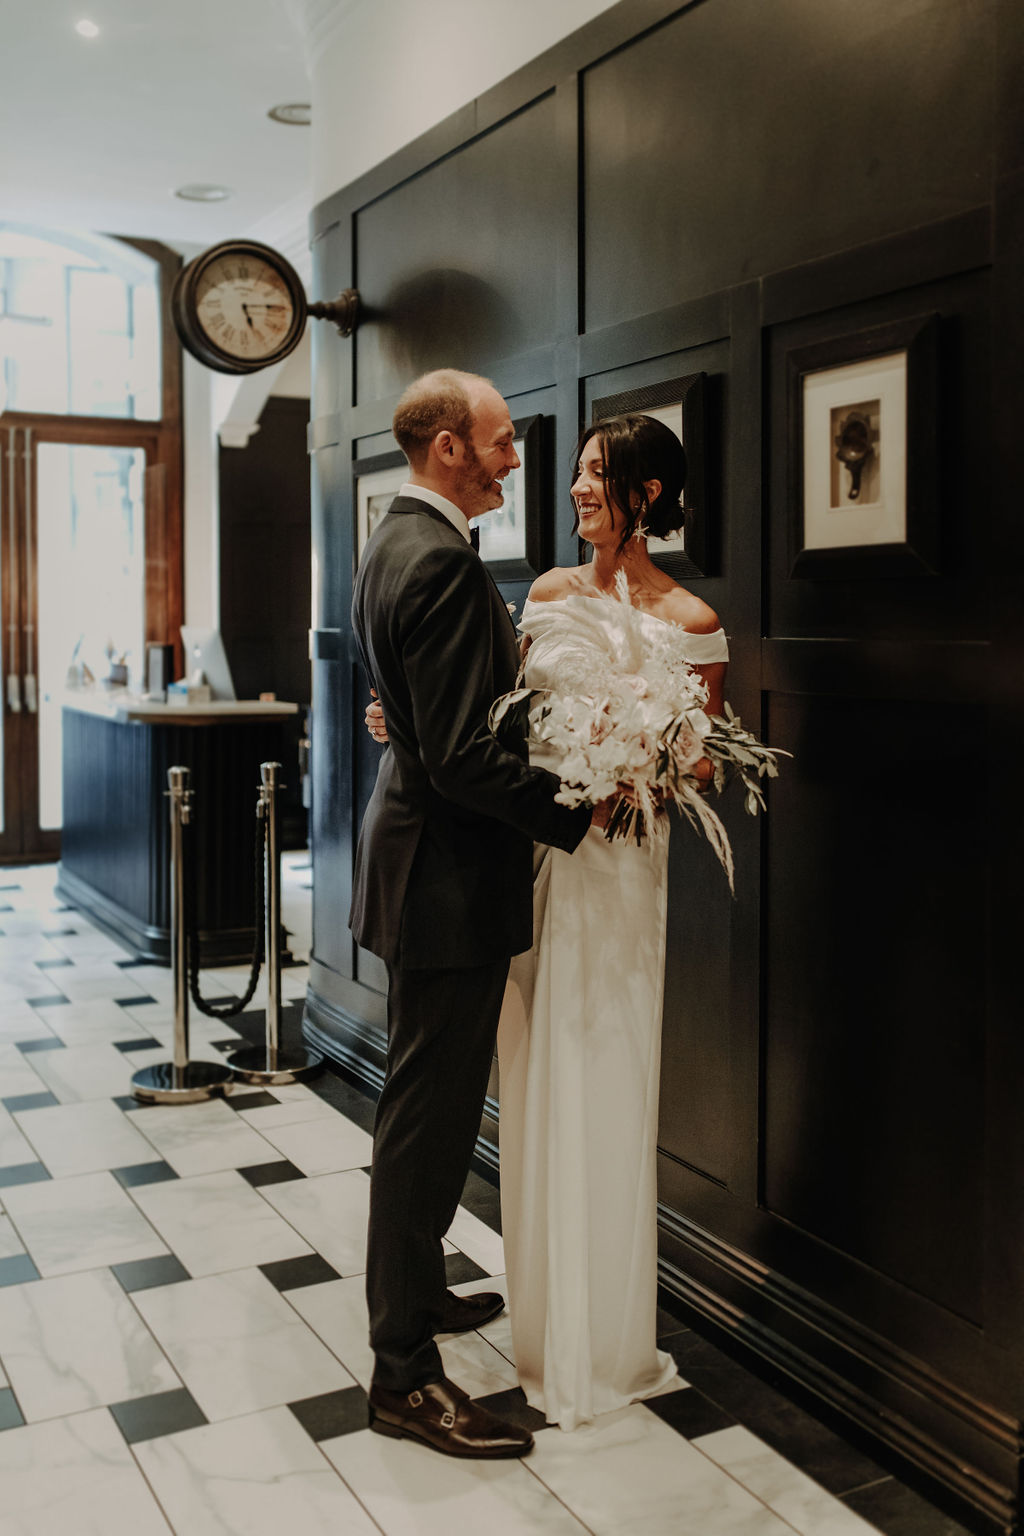 An Intimate City Wedding in Manchester (c) Gail Secker Photography (109)